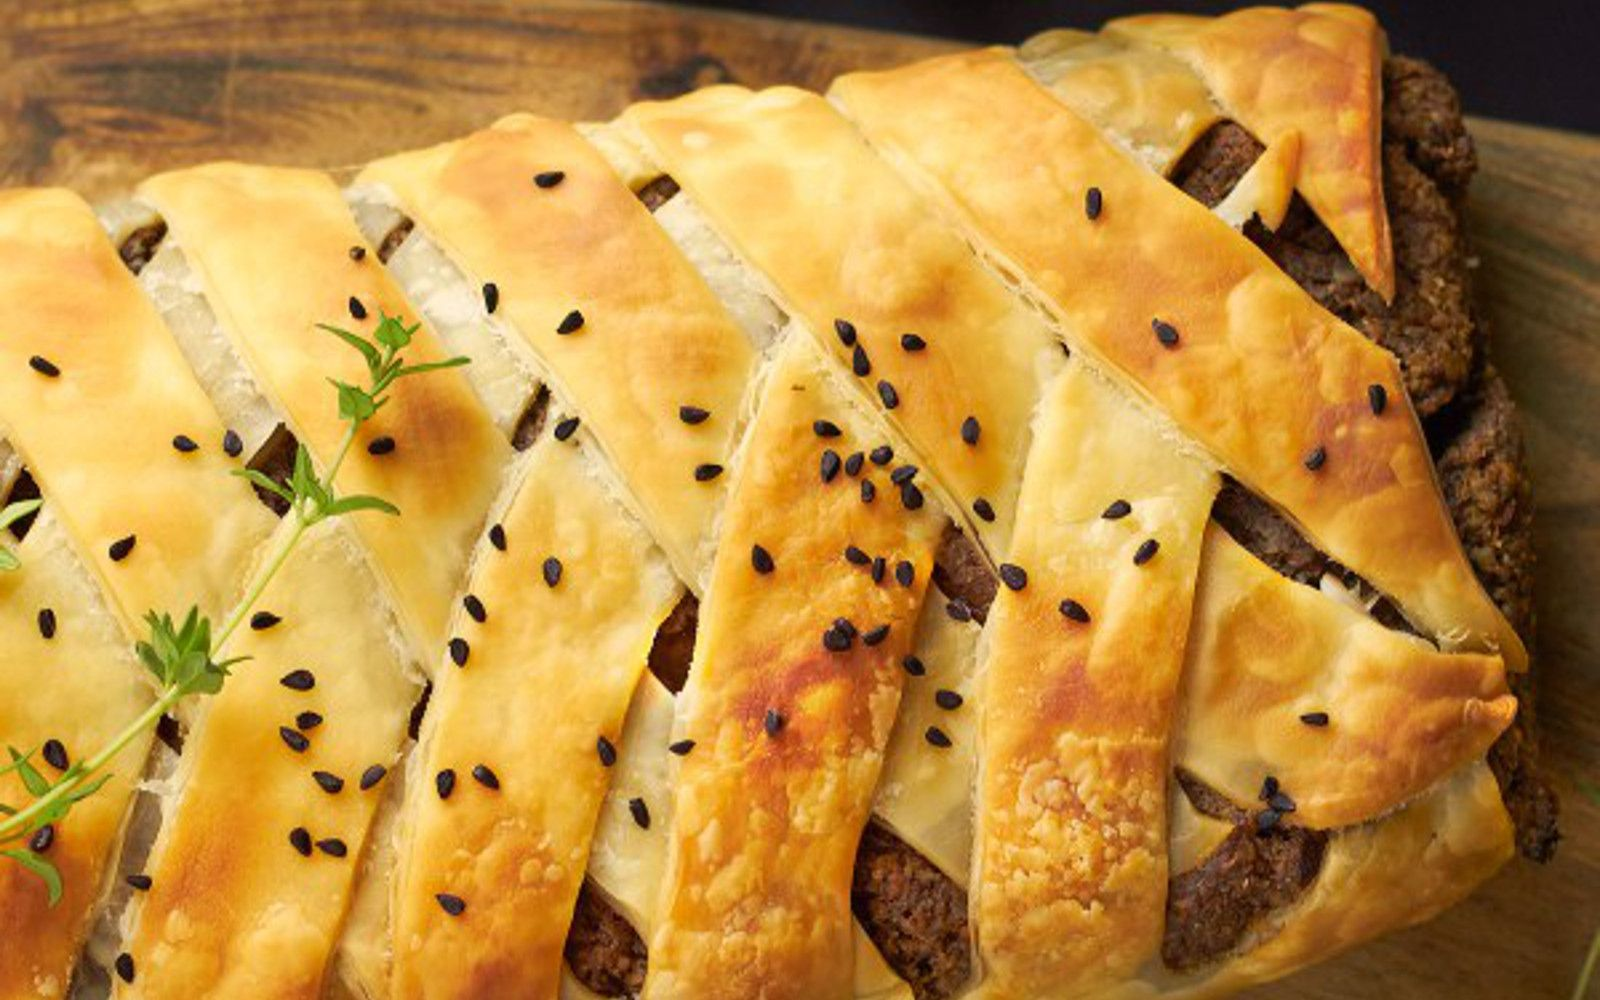 <p>A pastry sheet is filled with a savory and herbed mixture of mushrooms and pecans, topped with a lattice layer of strips, and then baked until golden brown.</p>